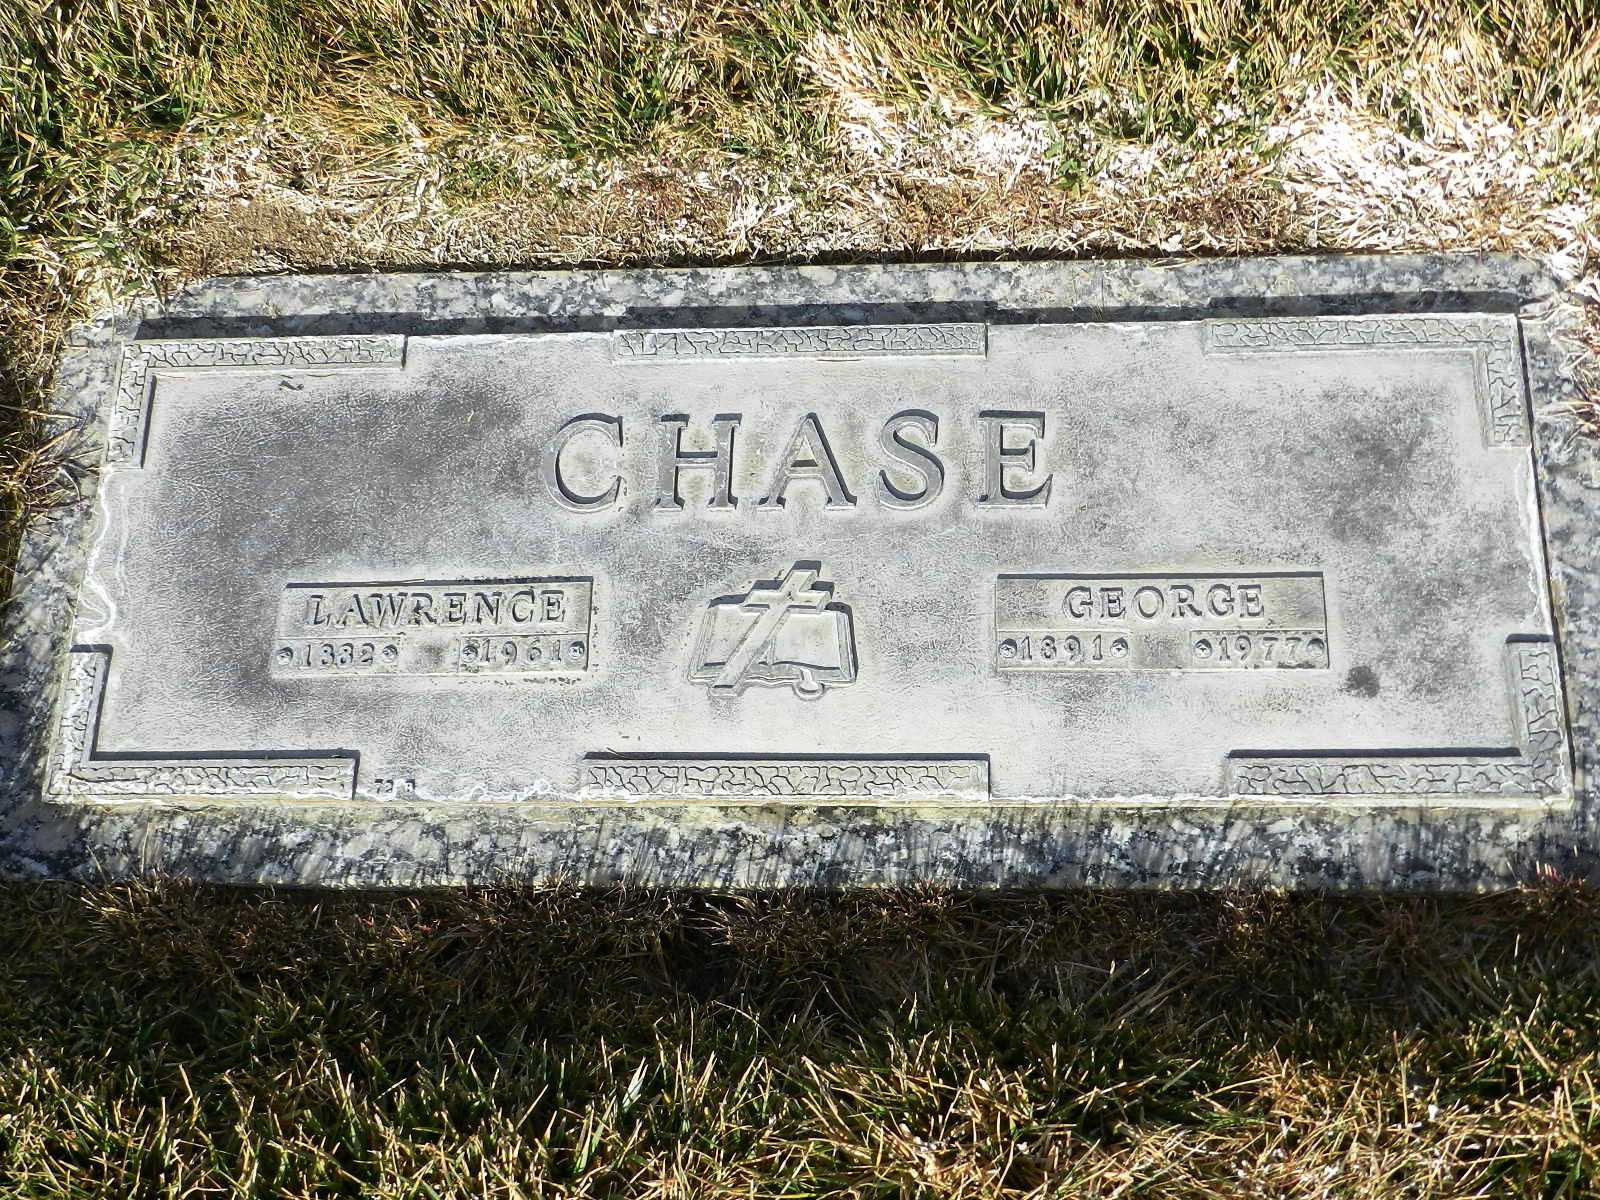 Lawrence Chase